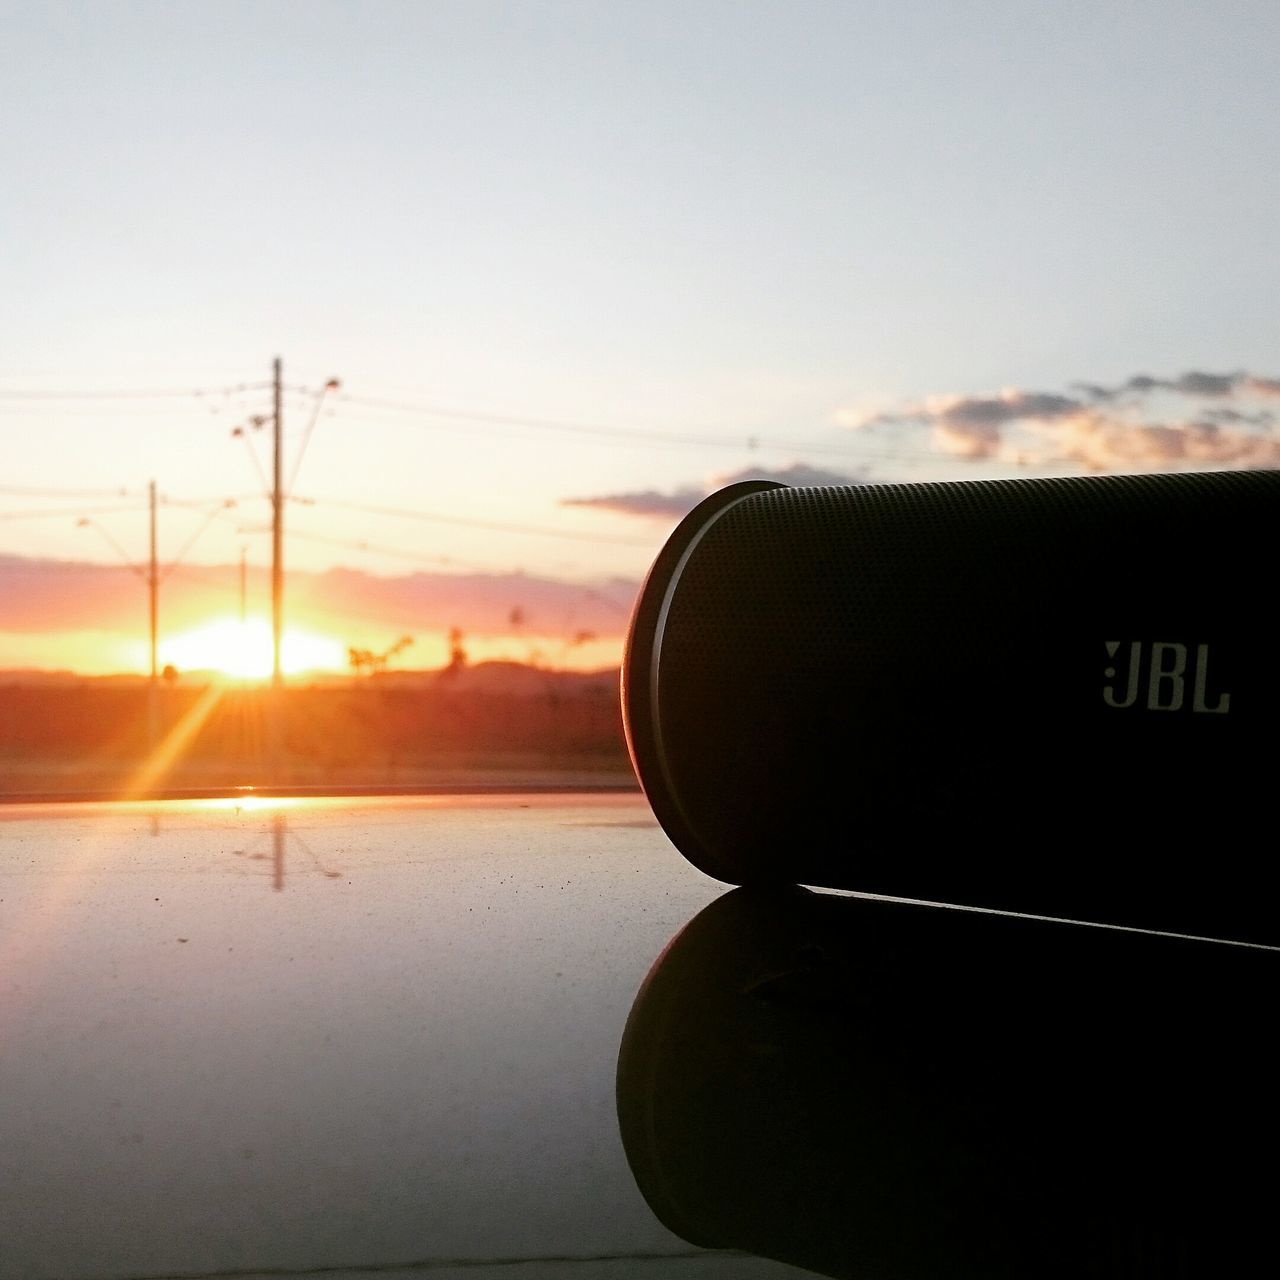 sunset, close-up, no people, sky, focus on foreground, sunlight, transportation, coin-operated binoculars, technology, indoors, day, nature, beauty in nature